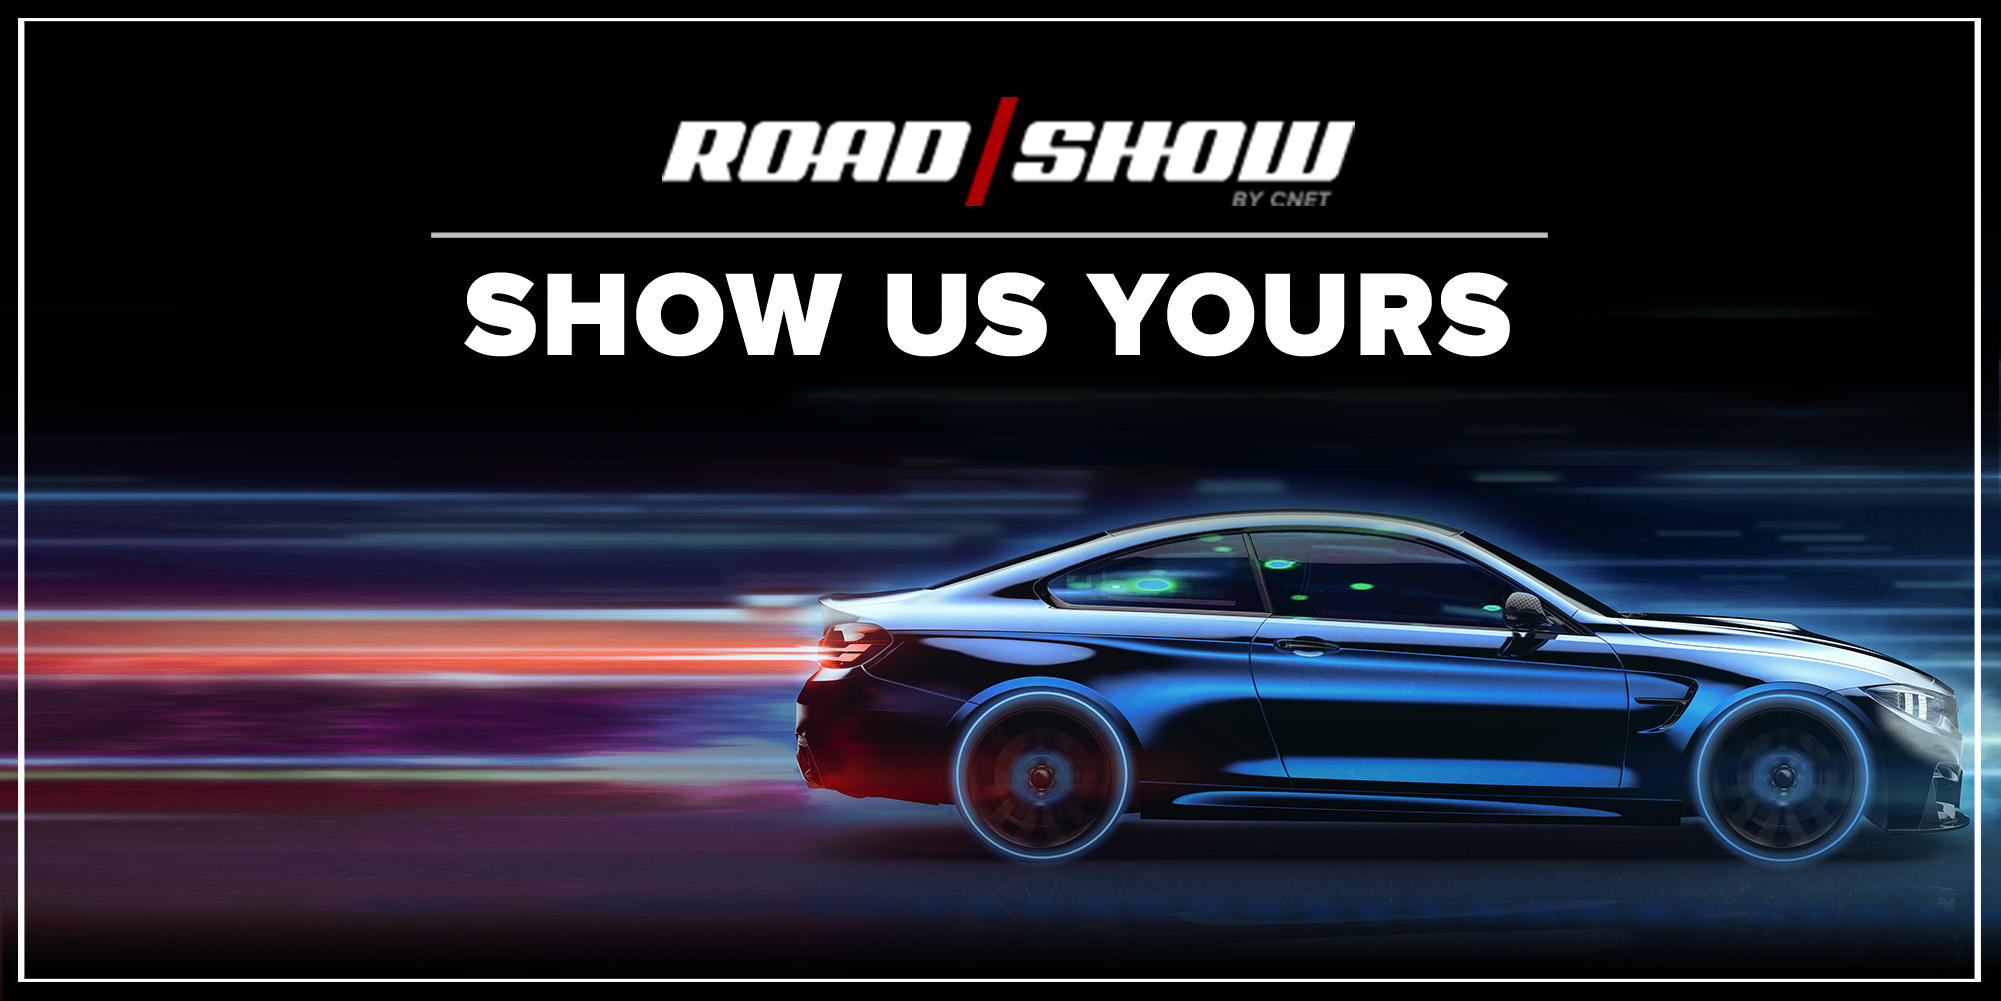 roadshow-show-us-yours